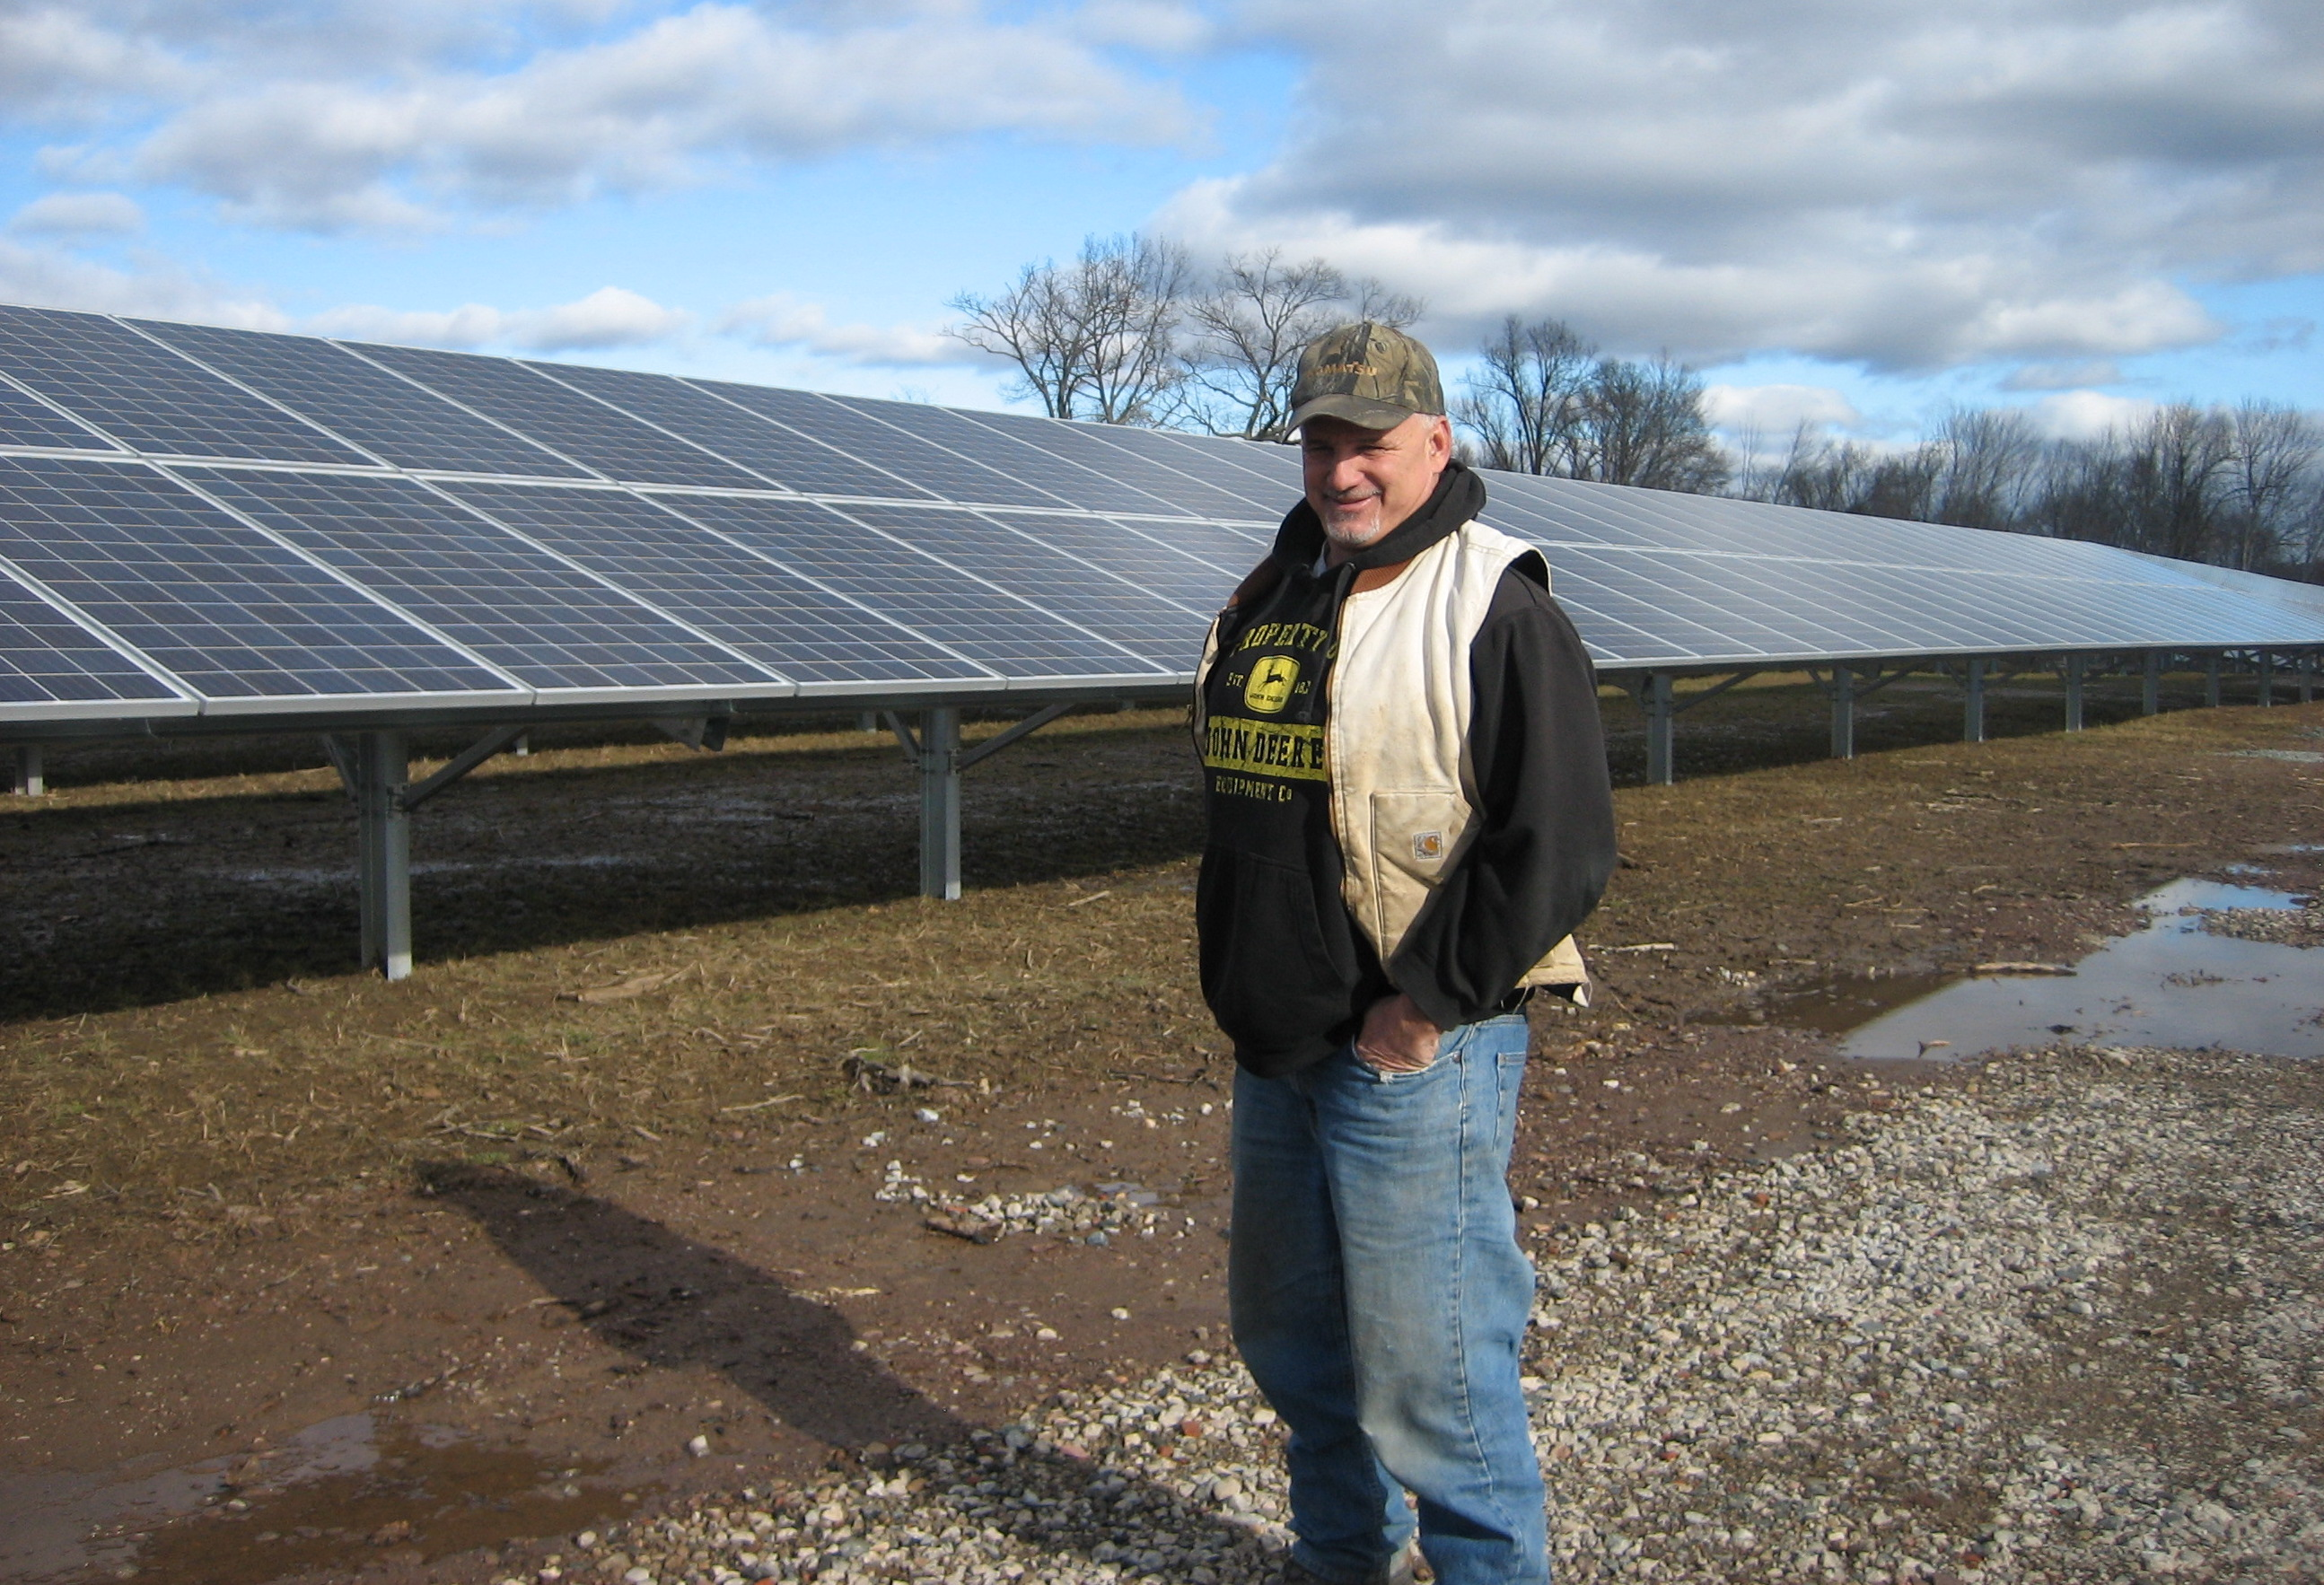 New farmland harvest – solar energy – creating political sparks